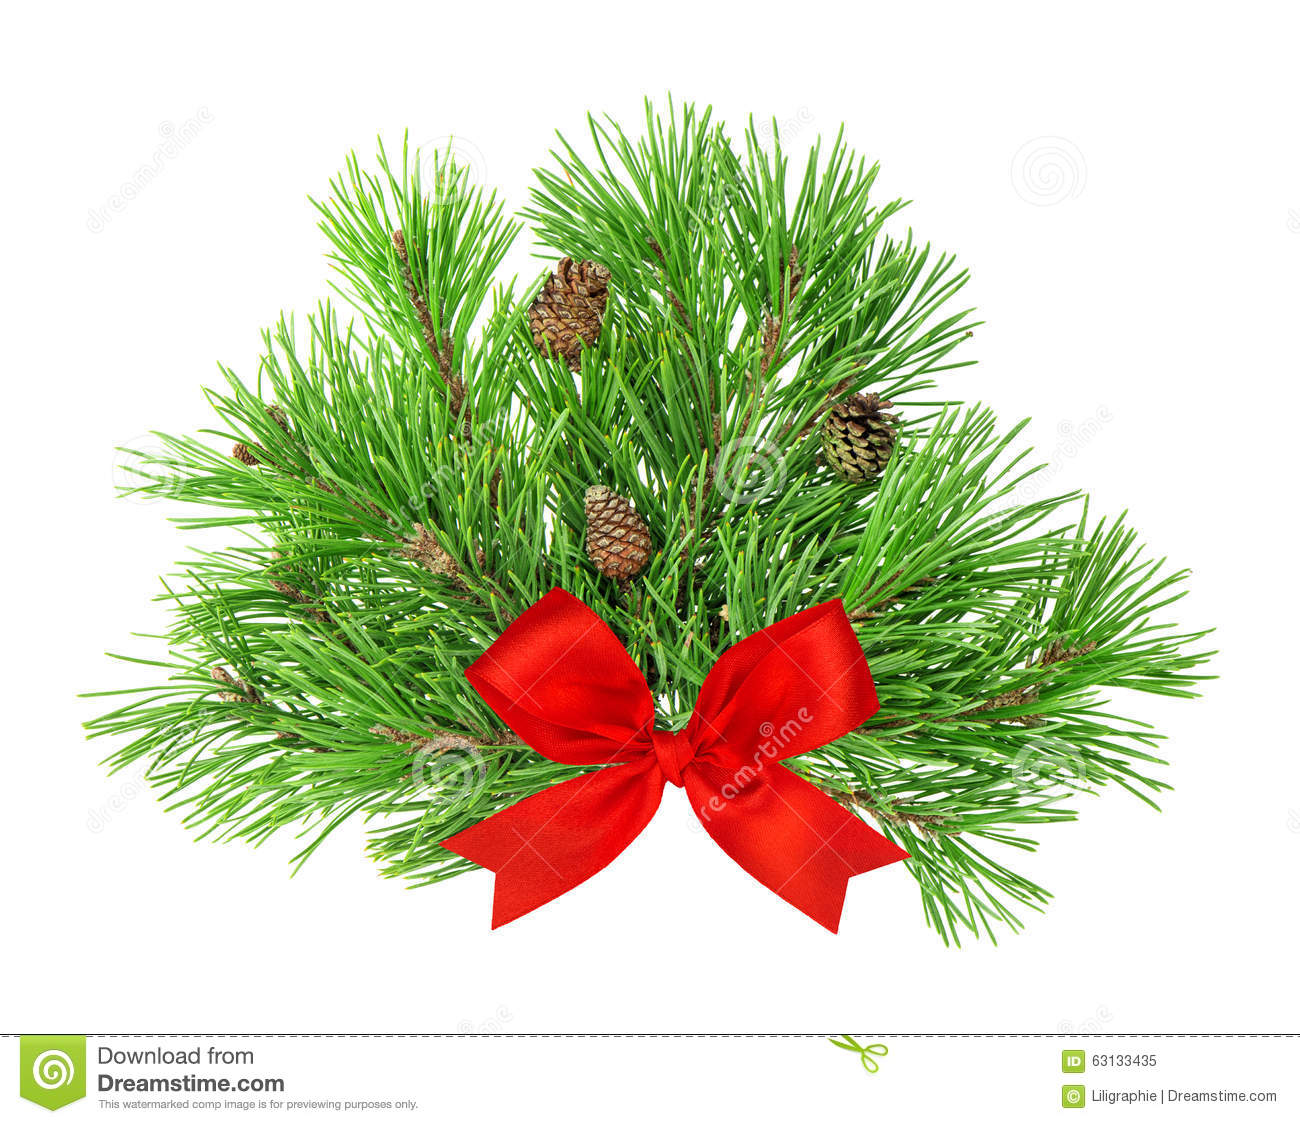 Pine tree branches with cones and red ribbon bow for Red ribbon around tree